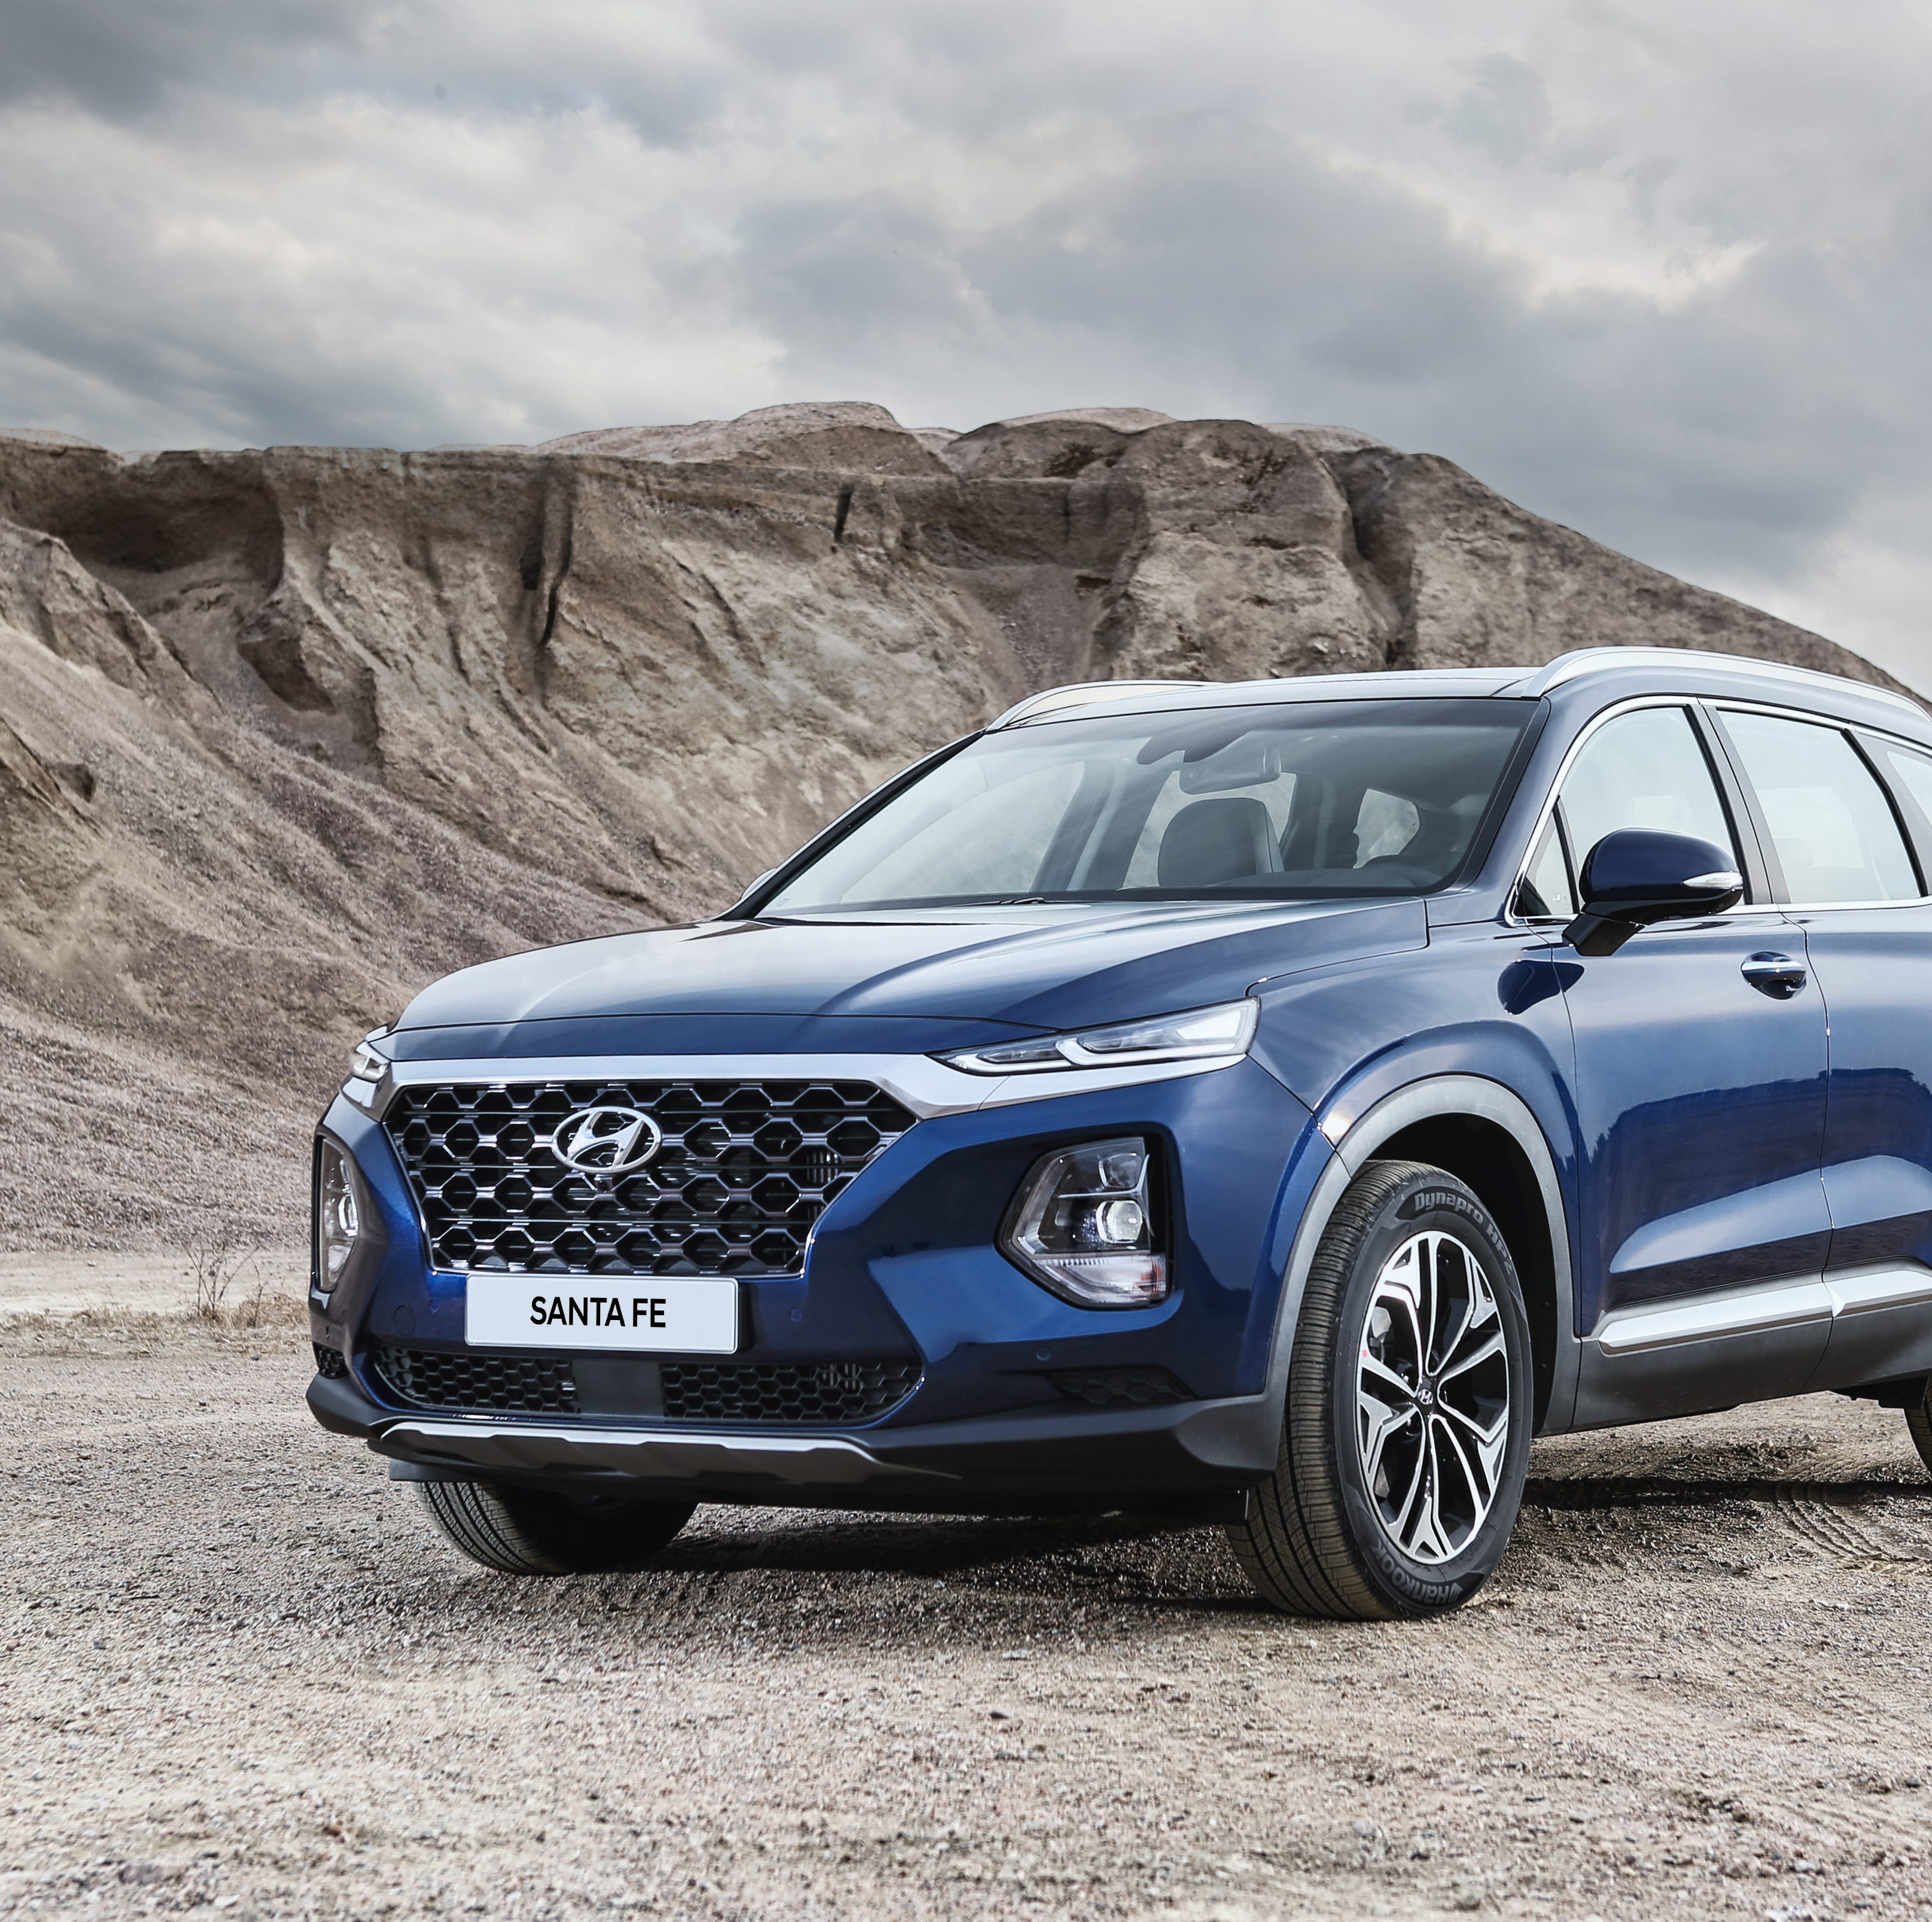 2019 Hyundai Santa Fe delivers a resilient ride